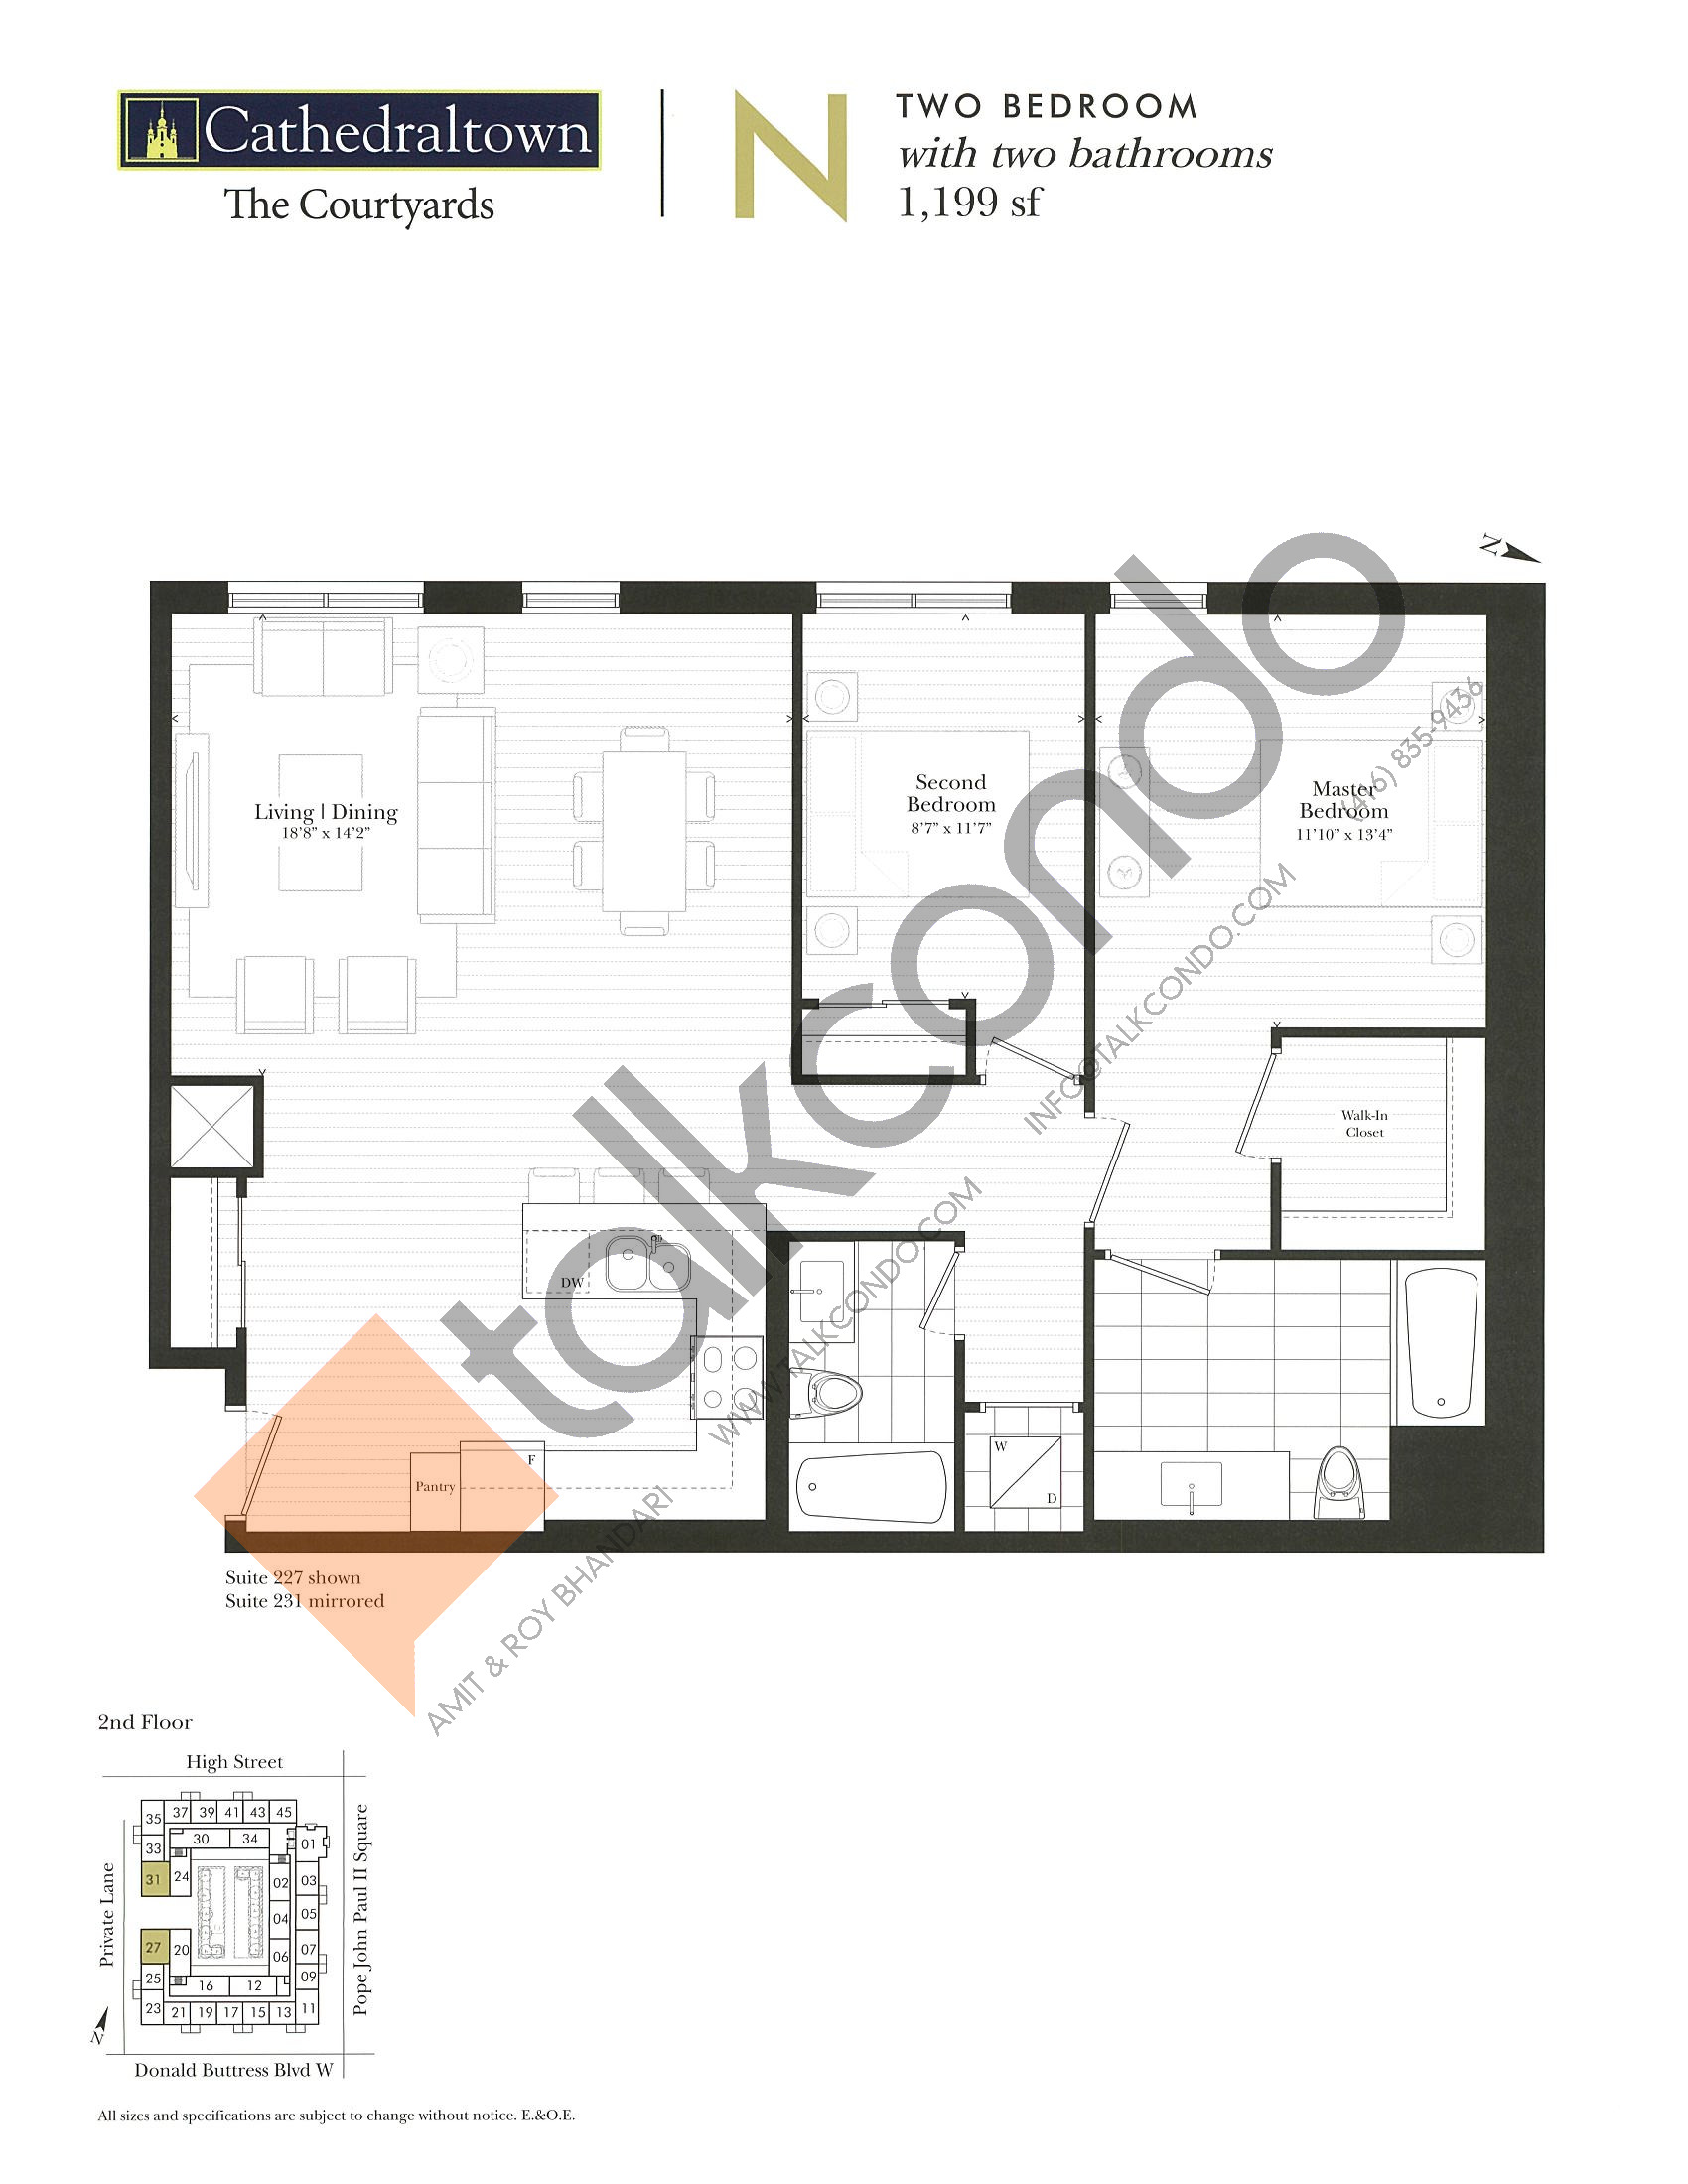 Unit N Floor Plan at The Courtyards at Cathedraltown Condos - 1199 sq.ft